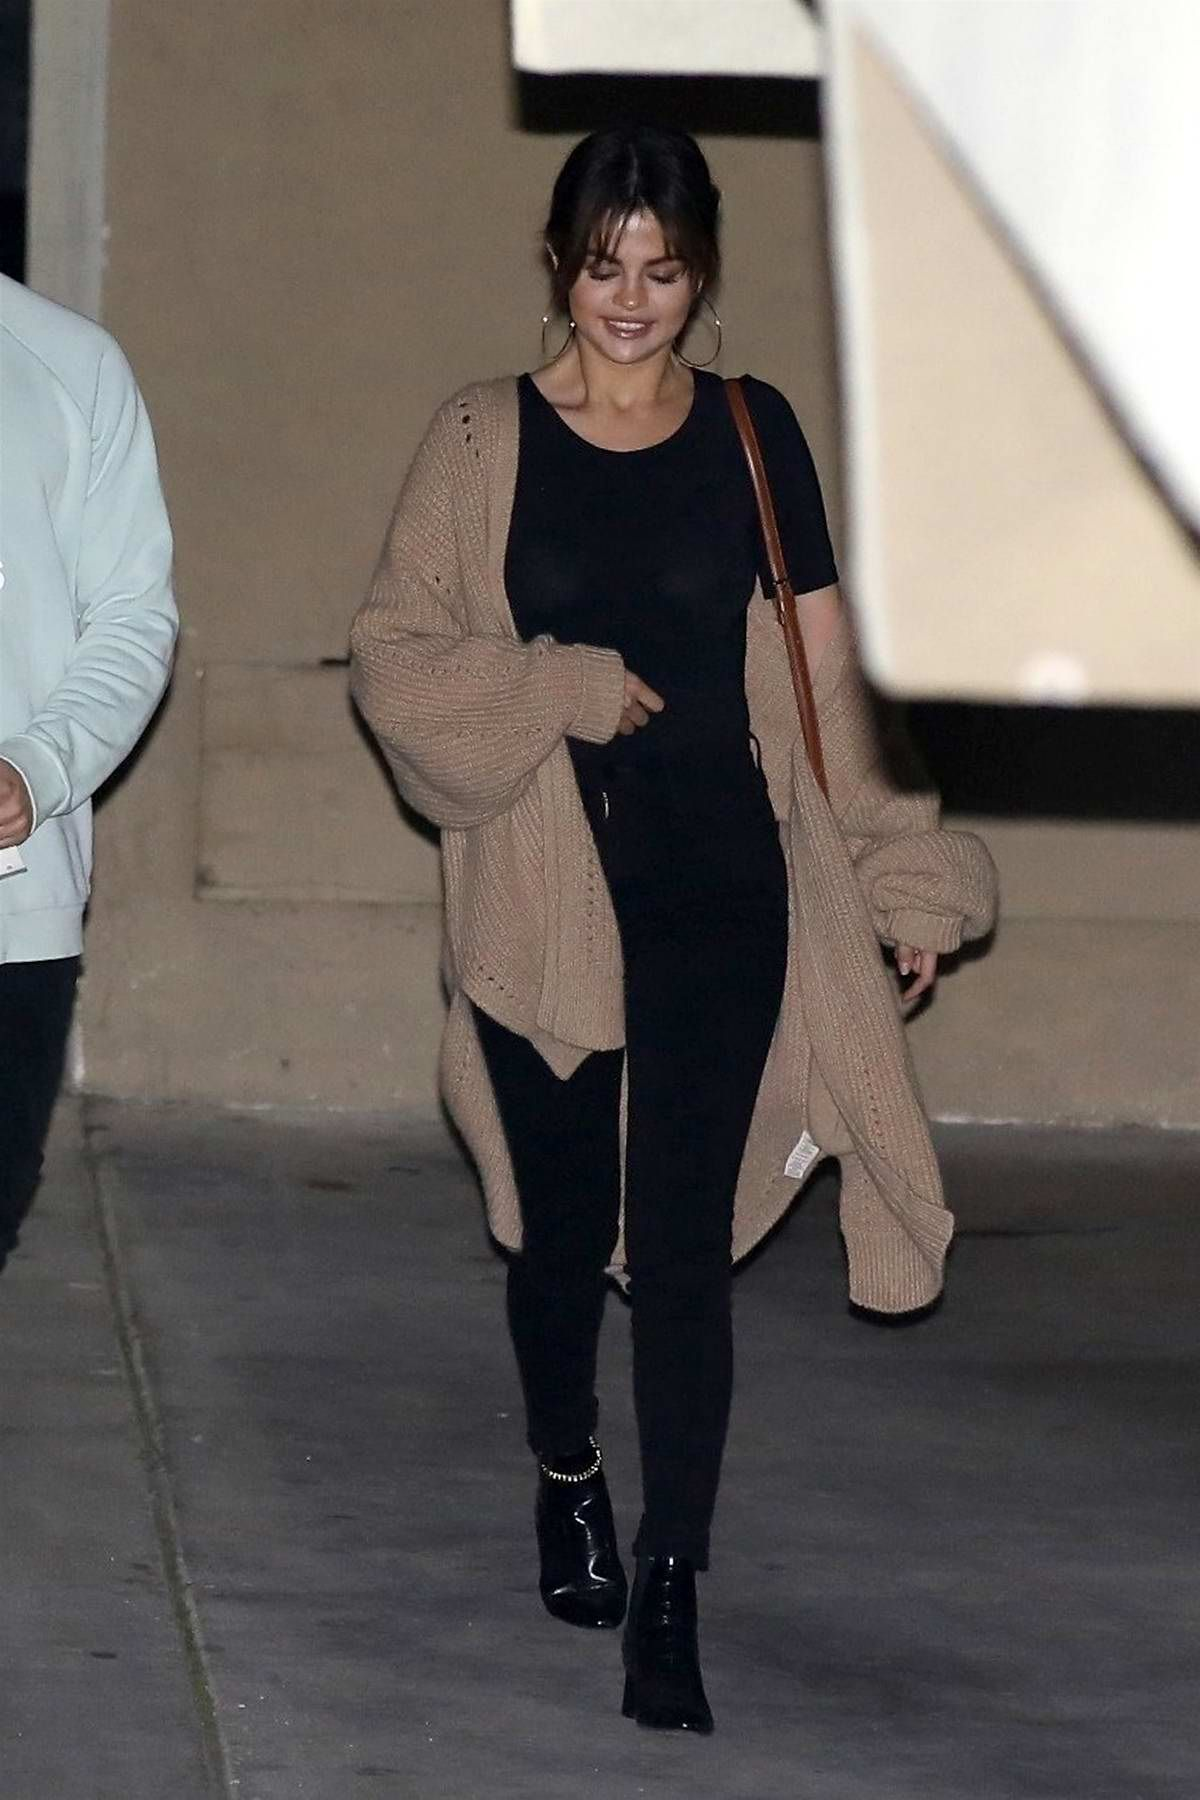 dd252c3dfbb7 Selena Gomez spotted in a brown knit cardigan over a black top and jeans as  she leaves church service in Los Angeles